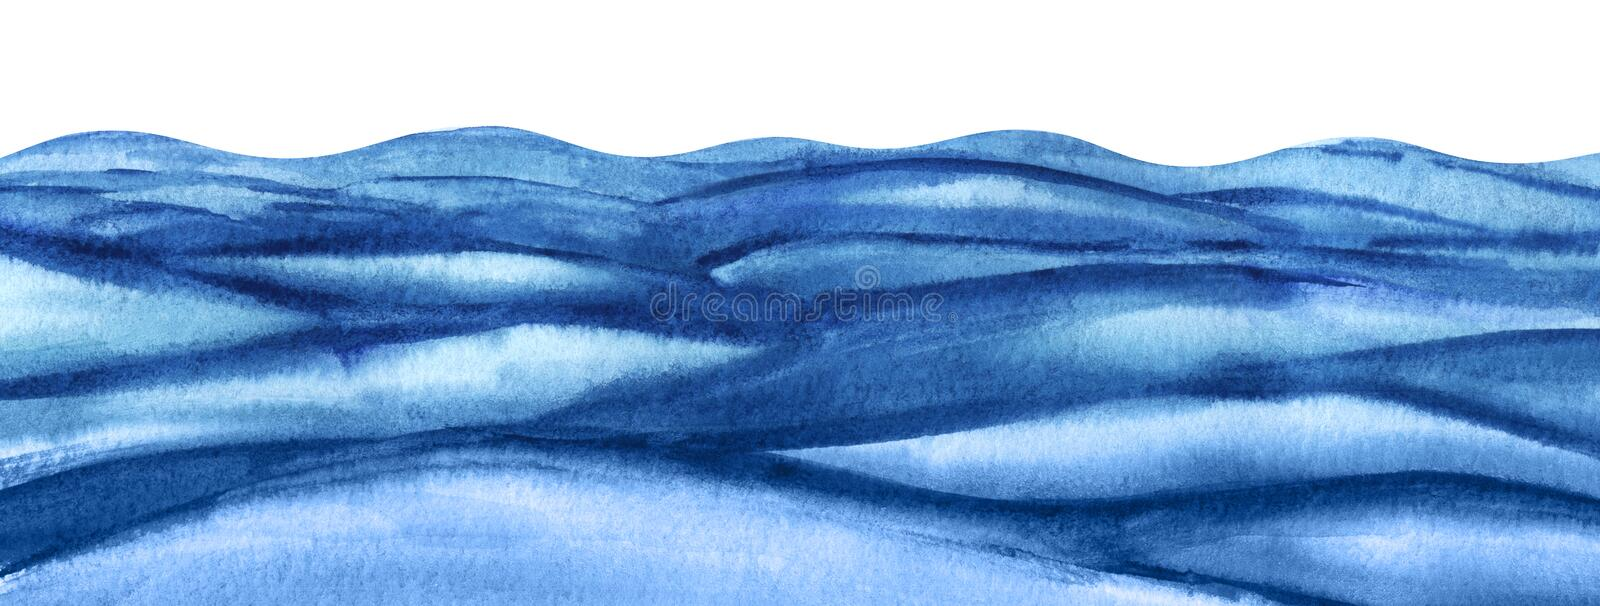 Abstract background illustration. Rough surface of the reservoir. A lot of blue turquoise waves. Wavy watercolor sea. Abstract background illustration. bottom royalty free stock photos